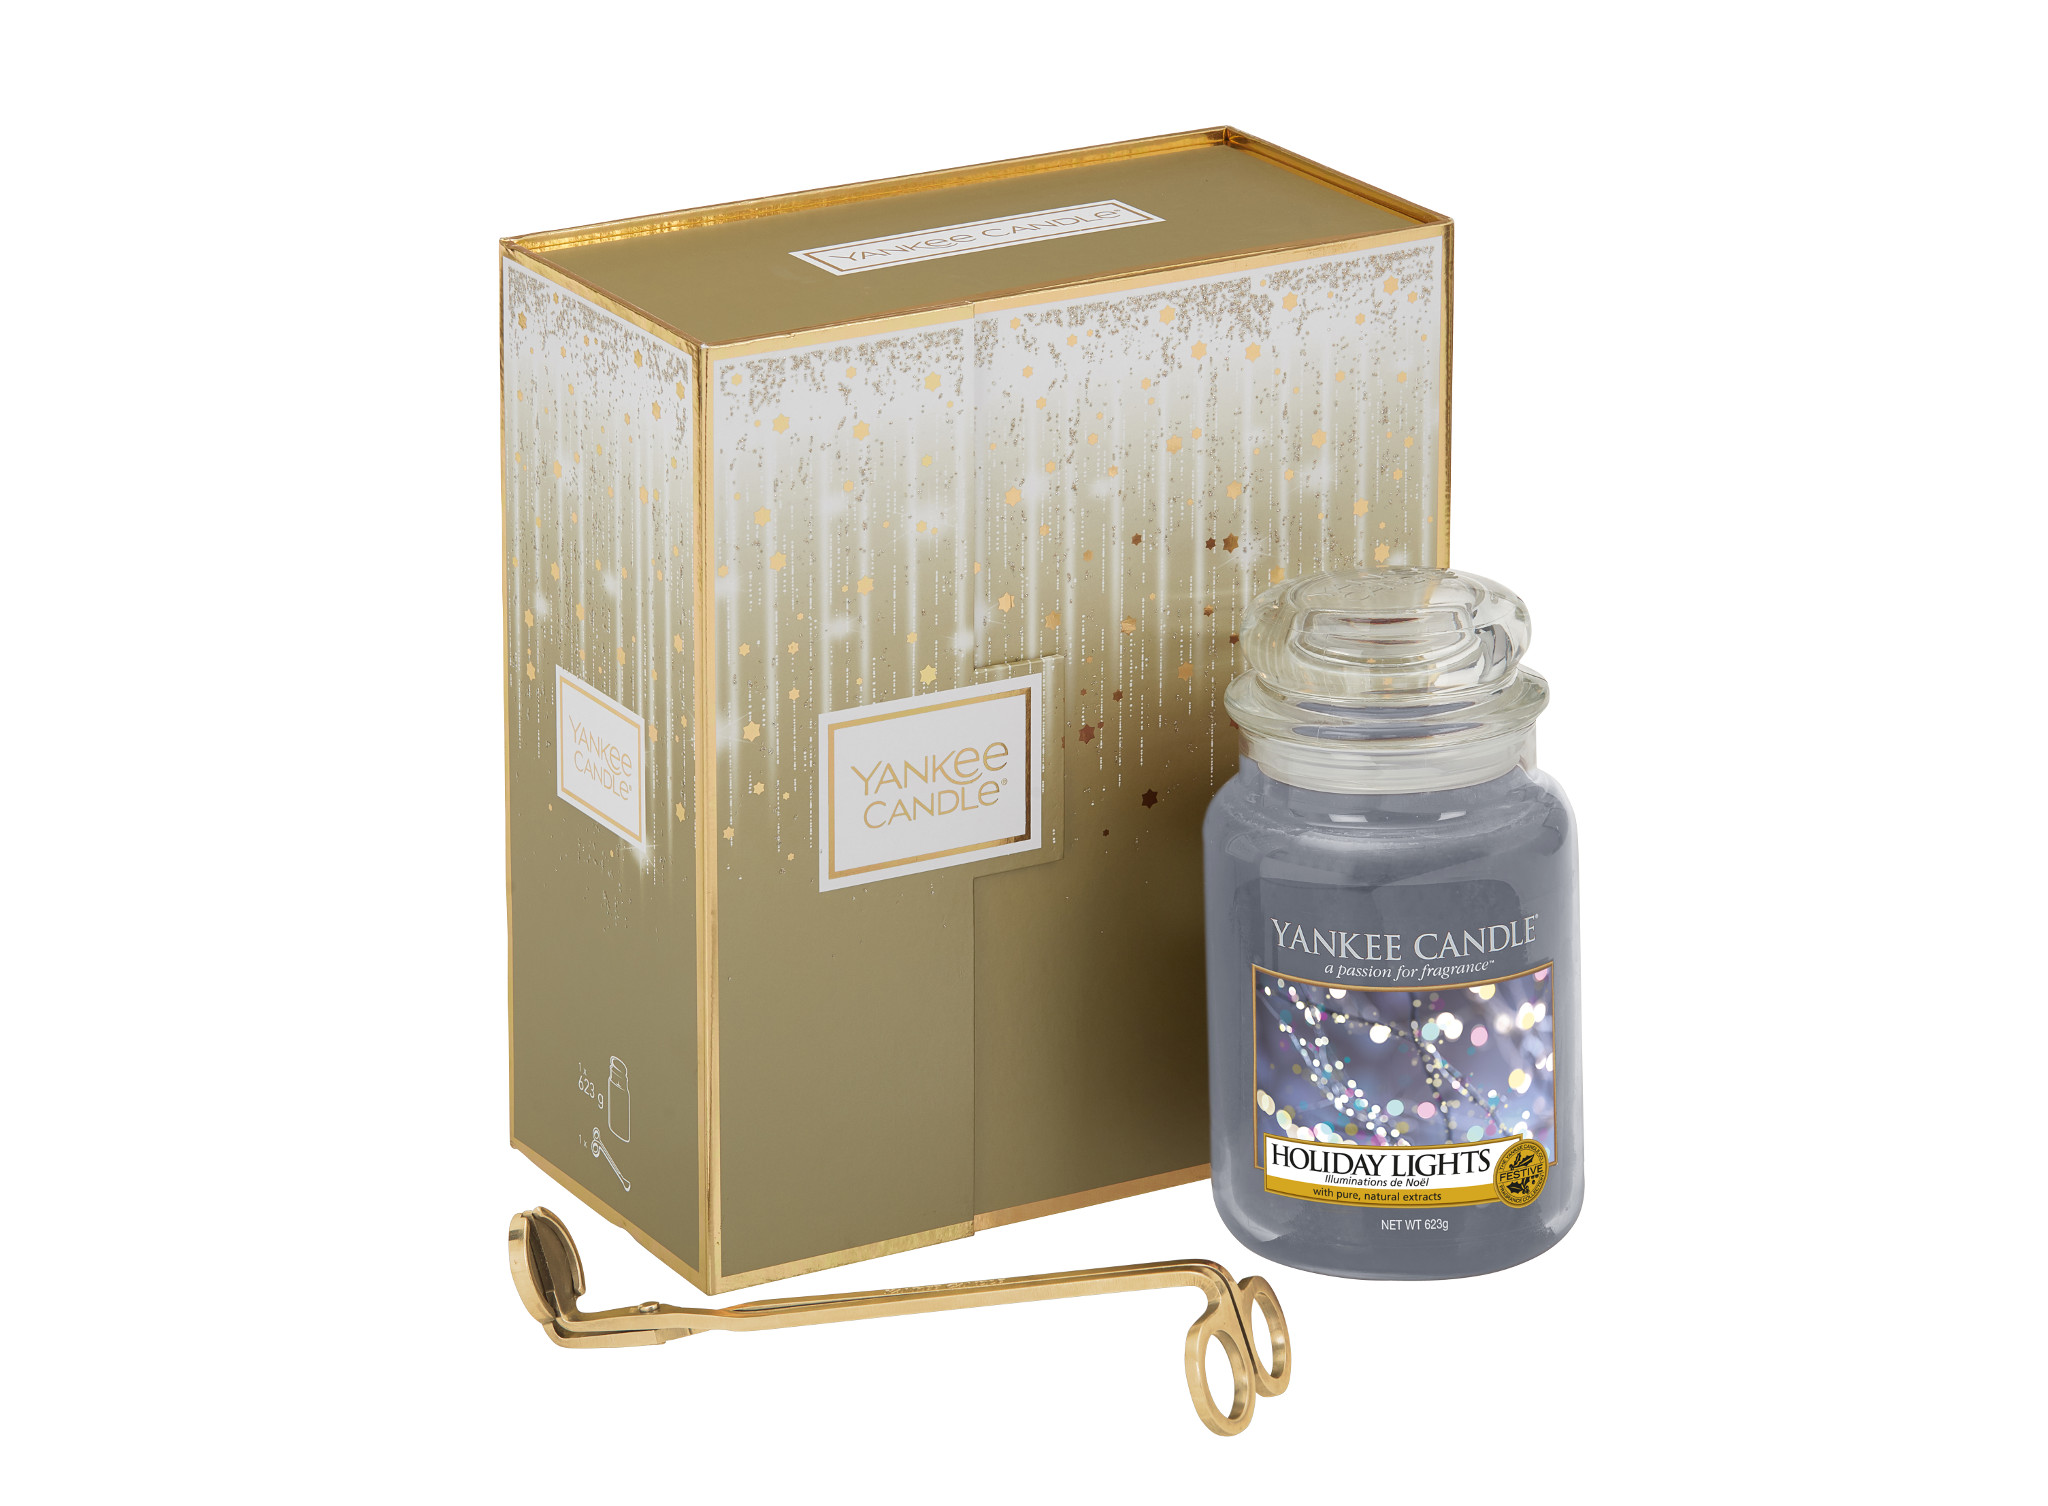 Holiday Lights Limited Edition Gift Set